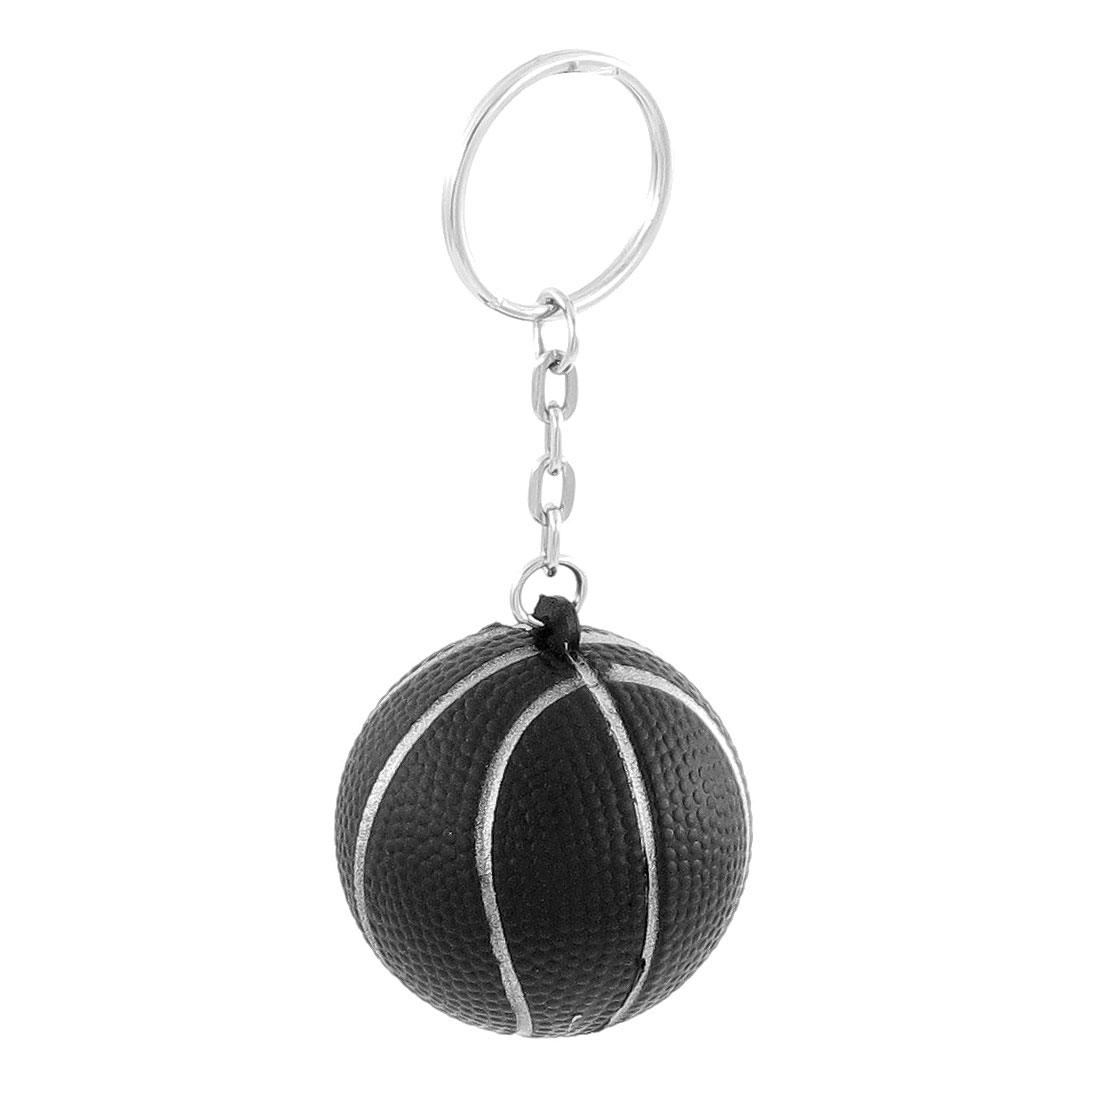 Bag Backpack Decor Keyring Metal Split Chain Basketball Dangling Pendant Black